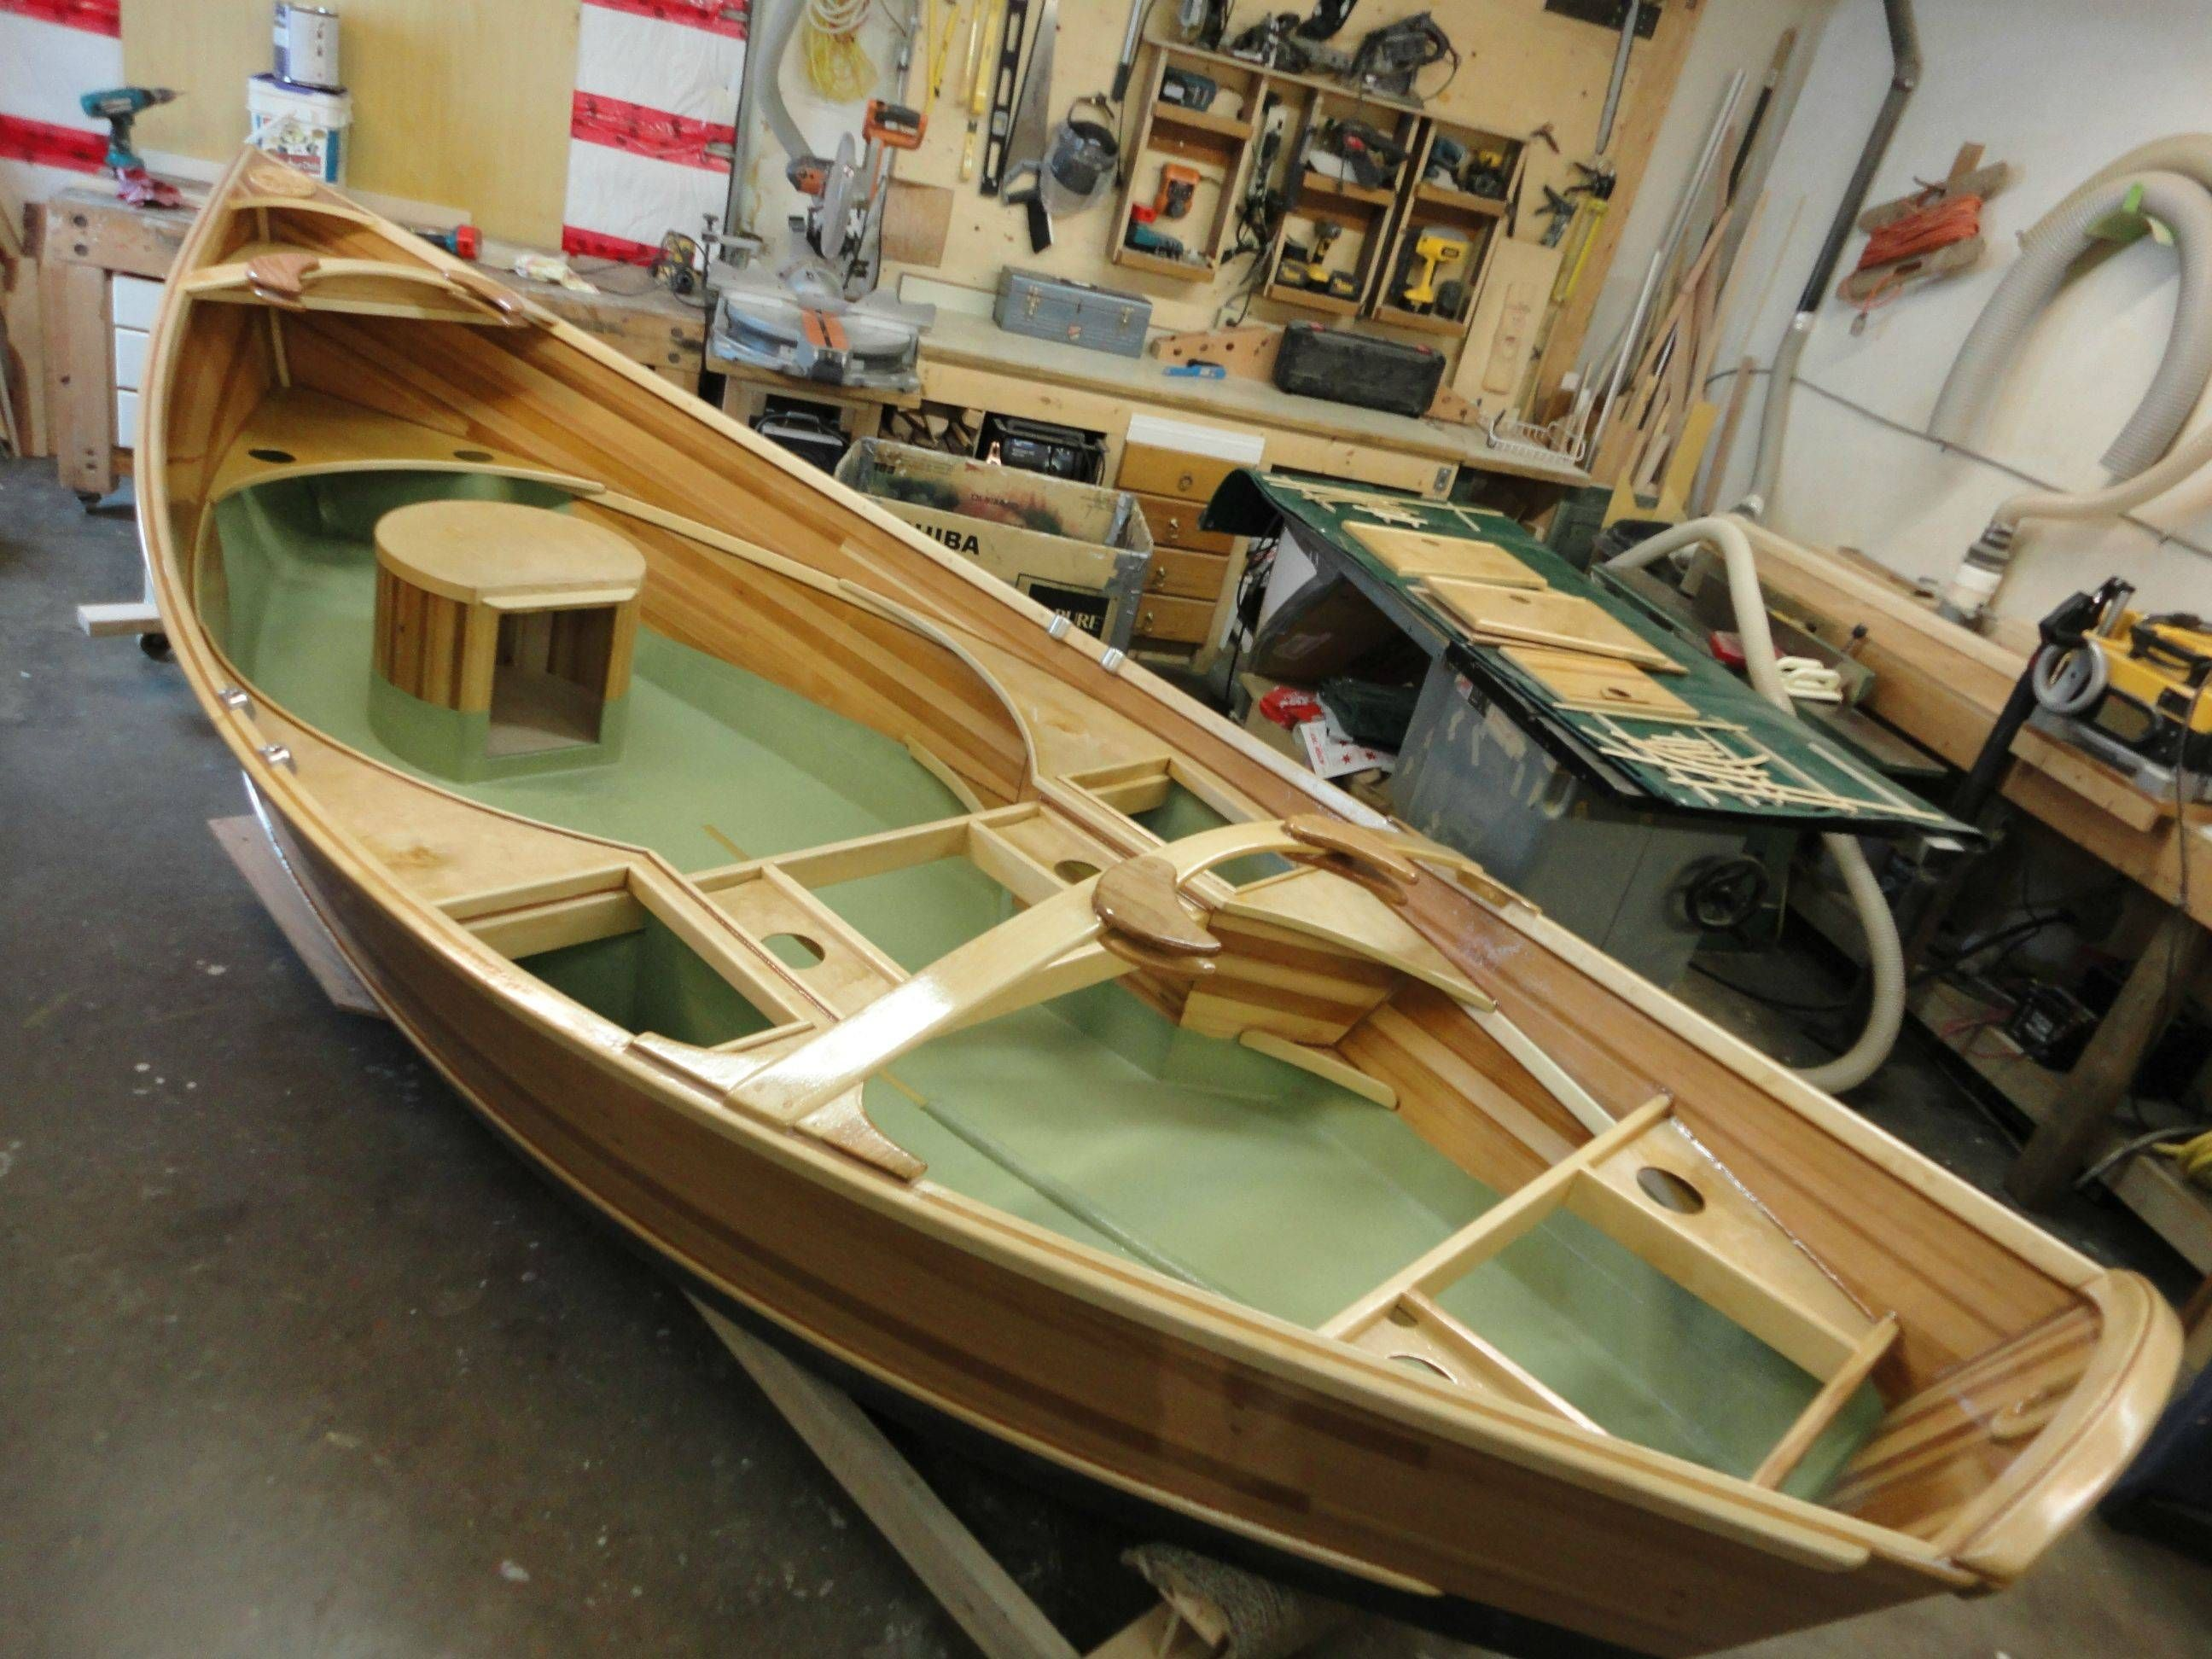 Home built jet dinghy s from new zealand boat design forums - Awesome Drift Boat In Progress